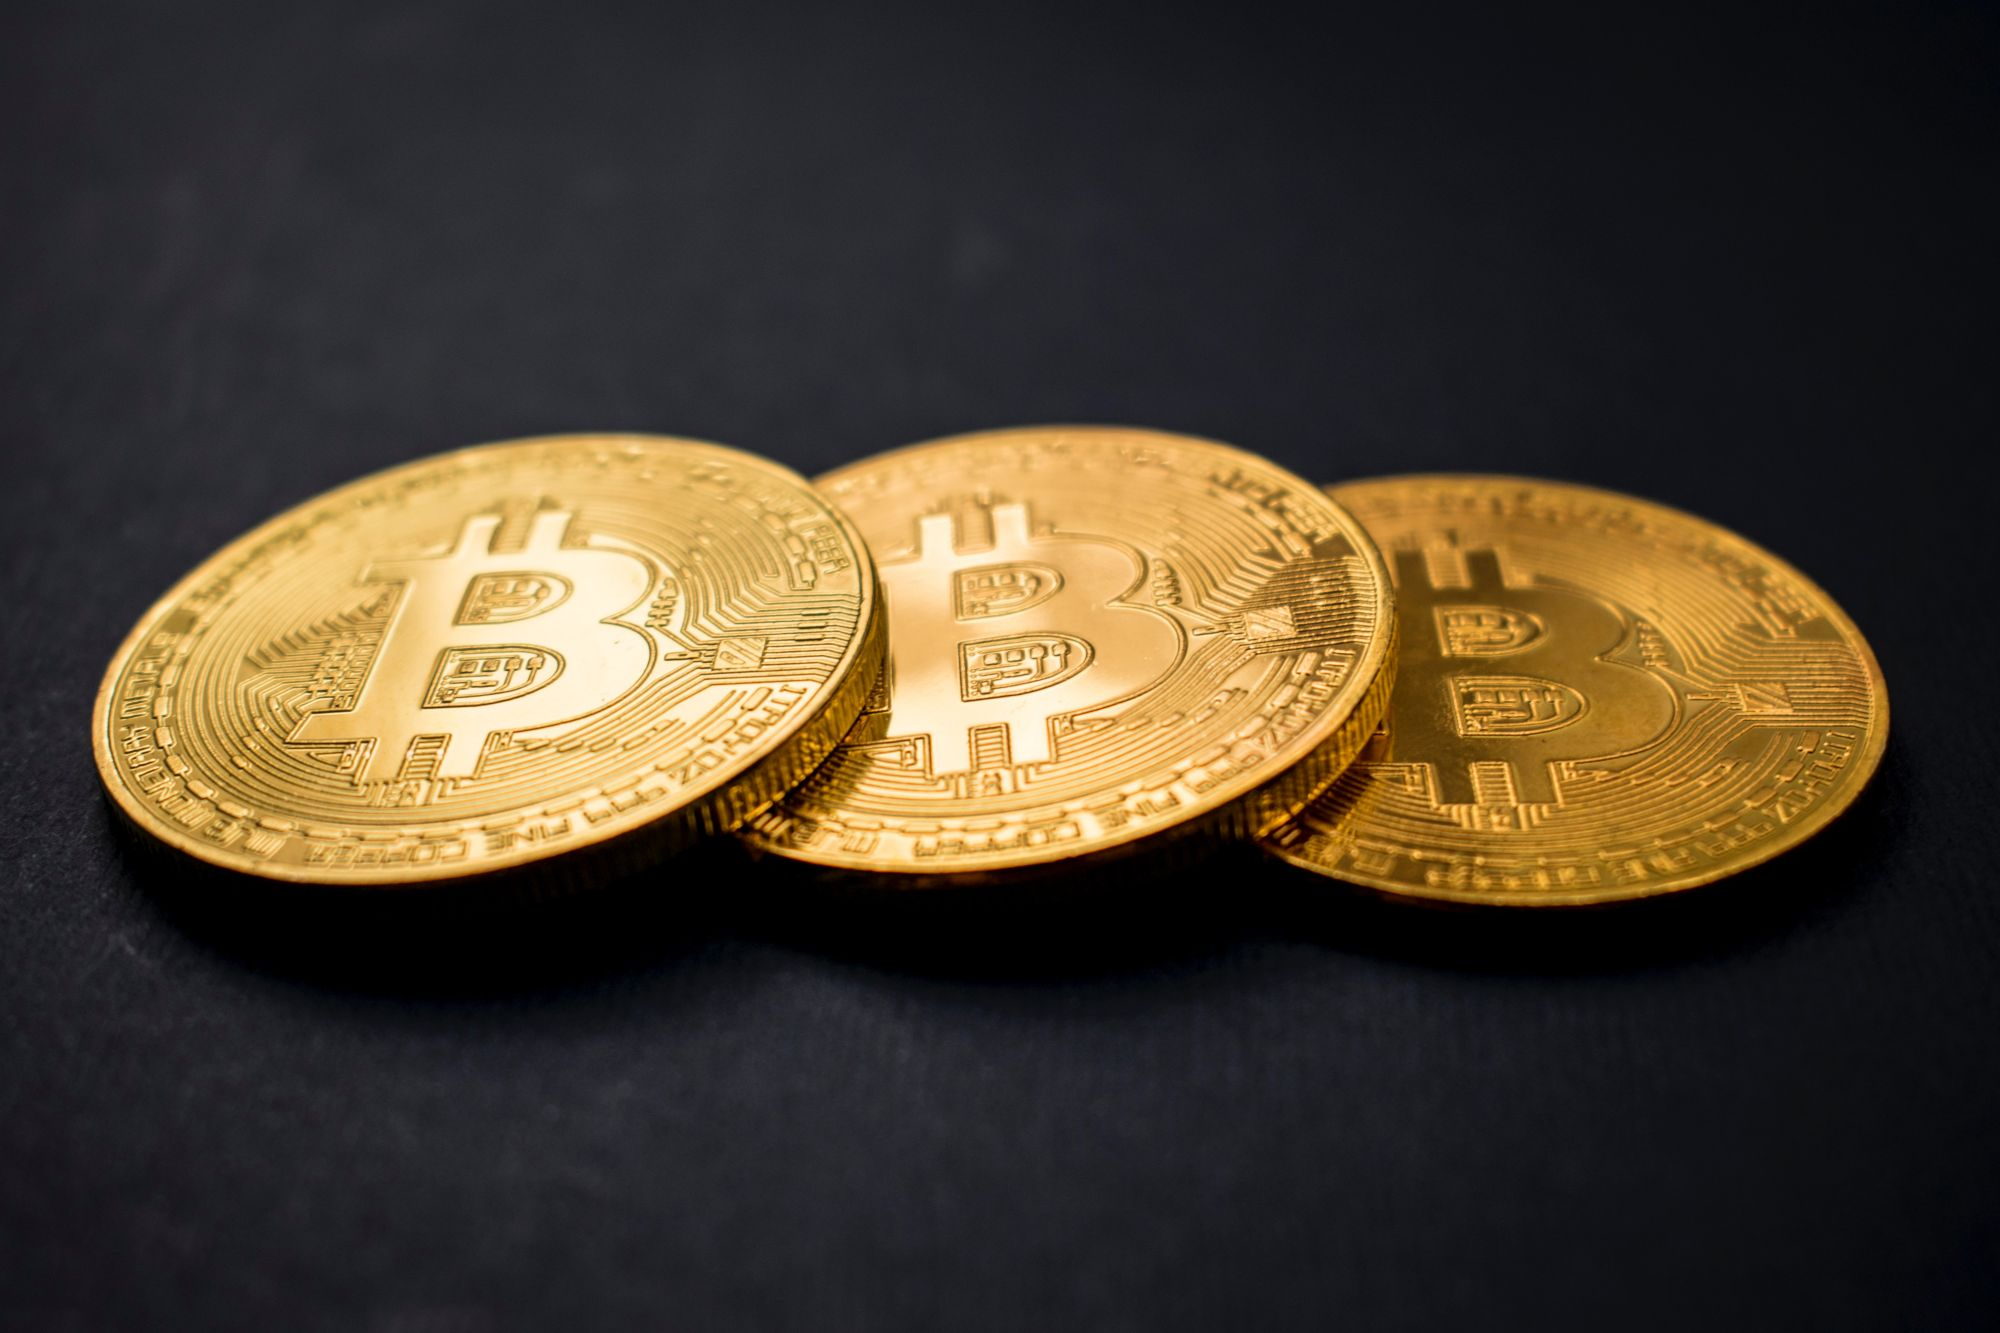 Bitcoin Breaks Another Record to Surge Past US$50,000 For the First Time